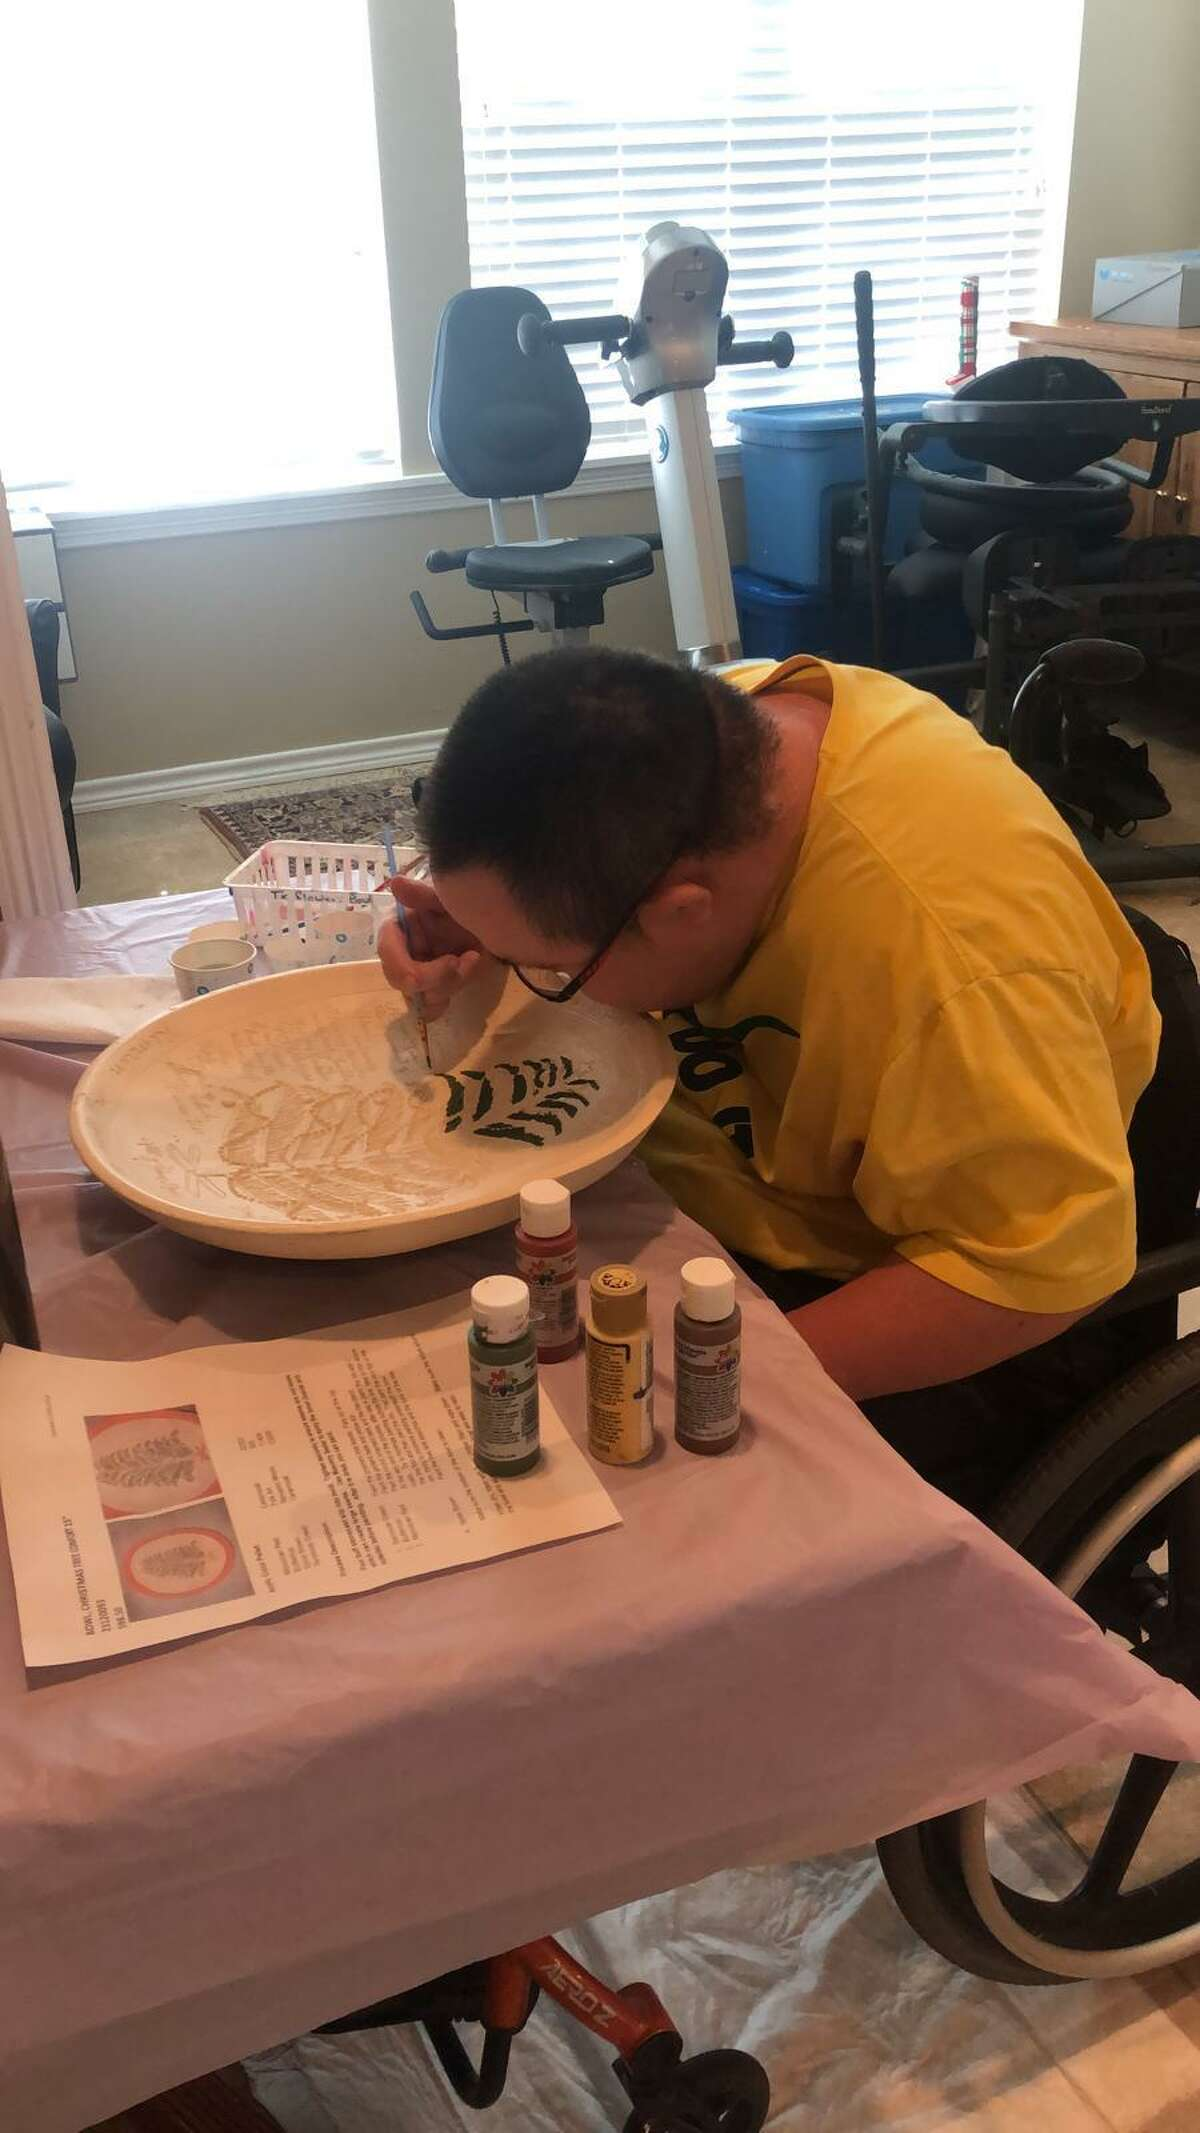 A Brookwood Community citizen paints a bowl from his room. As most of Brookwood's citizens are medically fragile, the community has had to isolate its citizens and alter its programs.